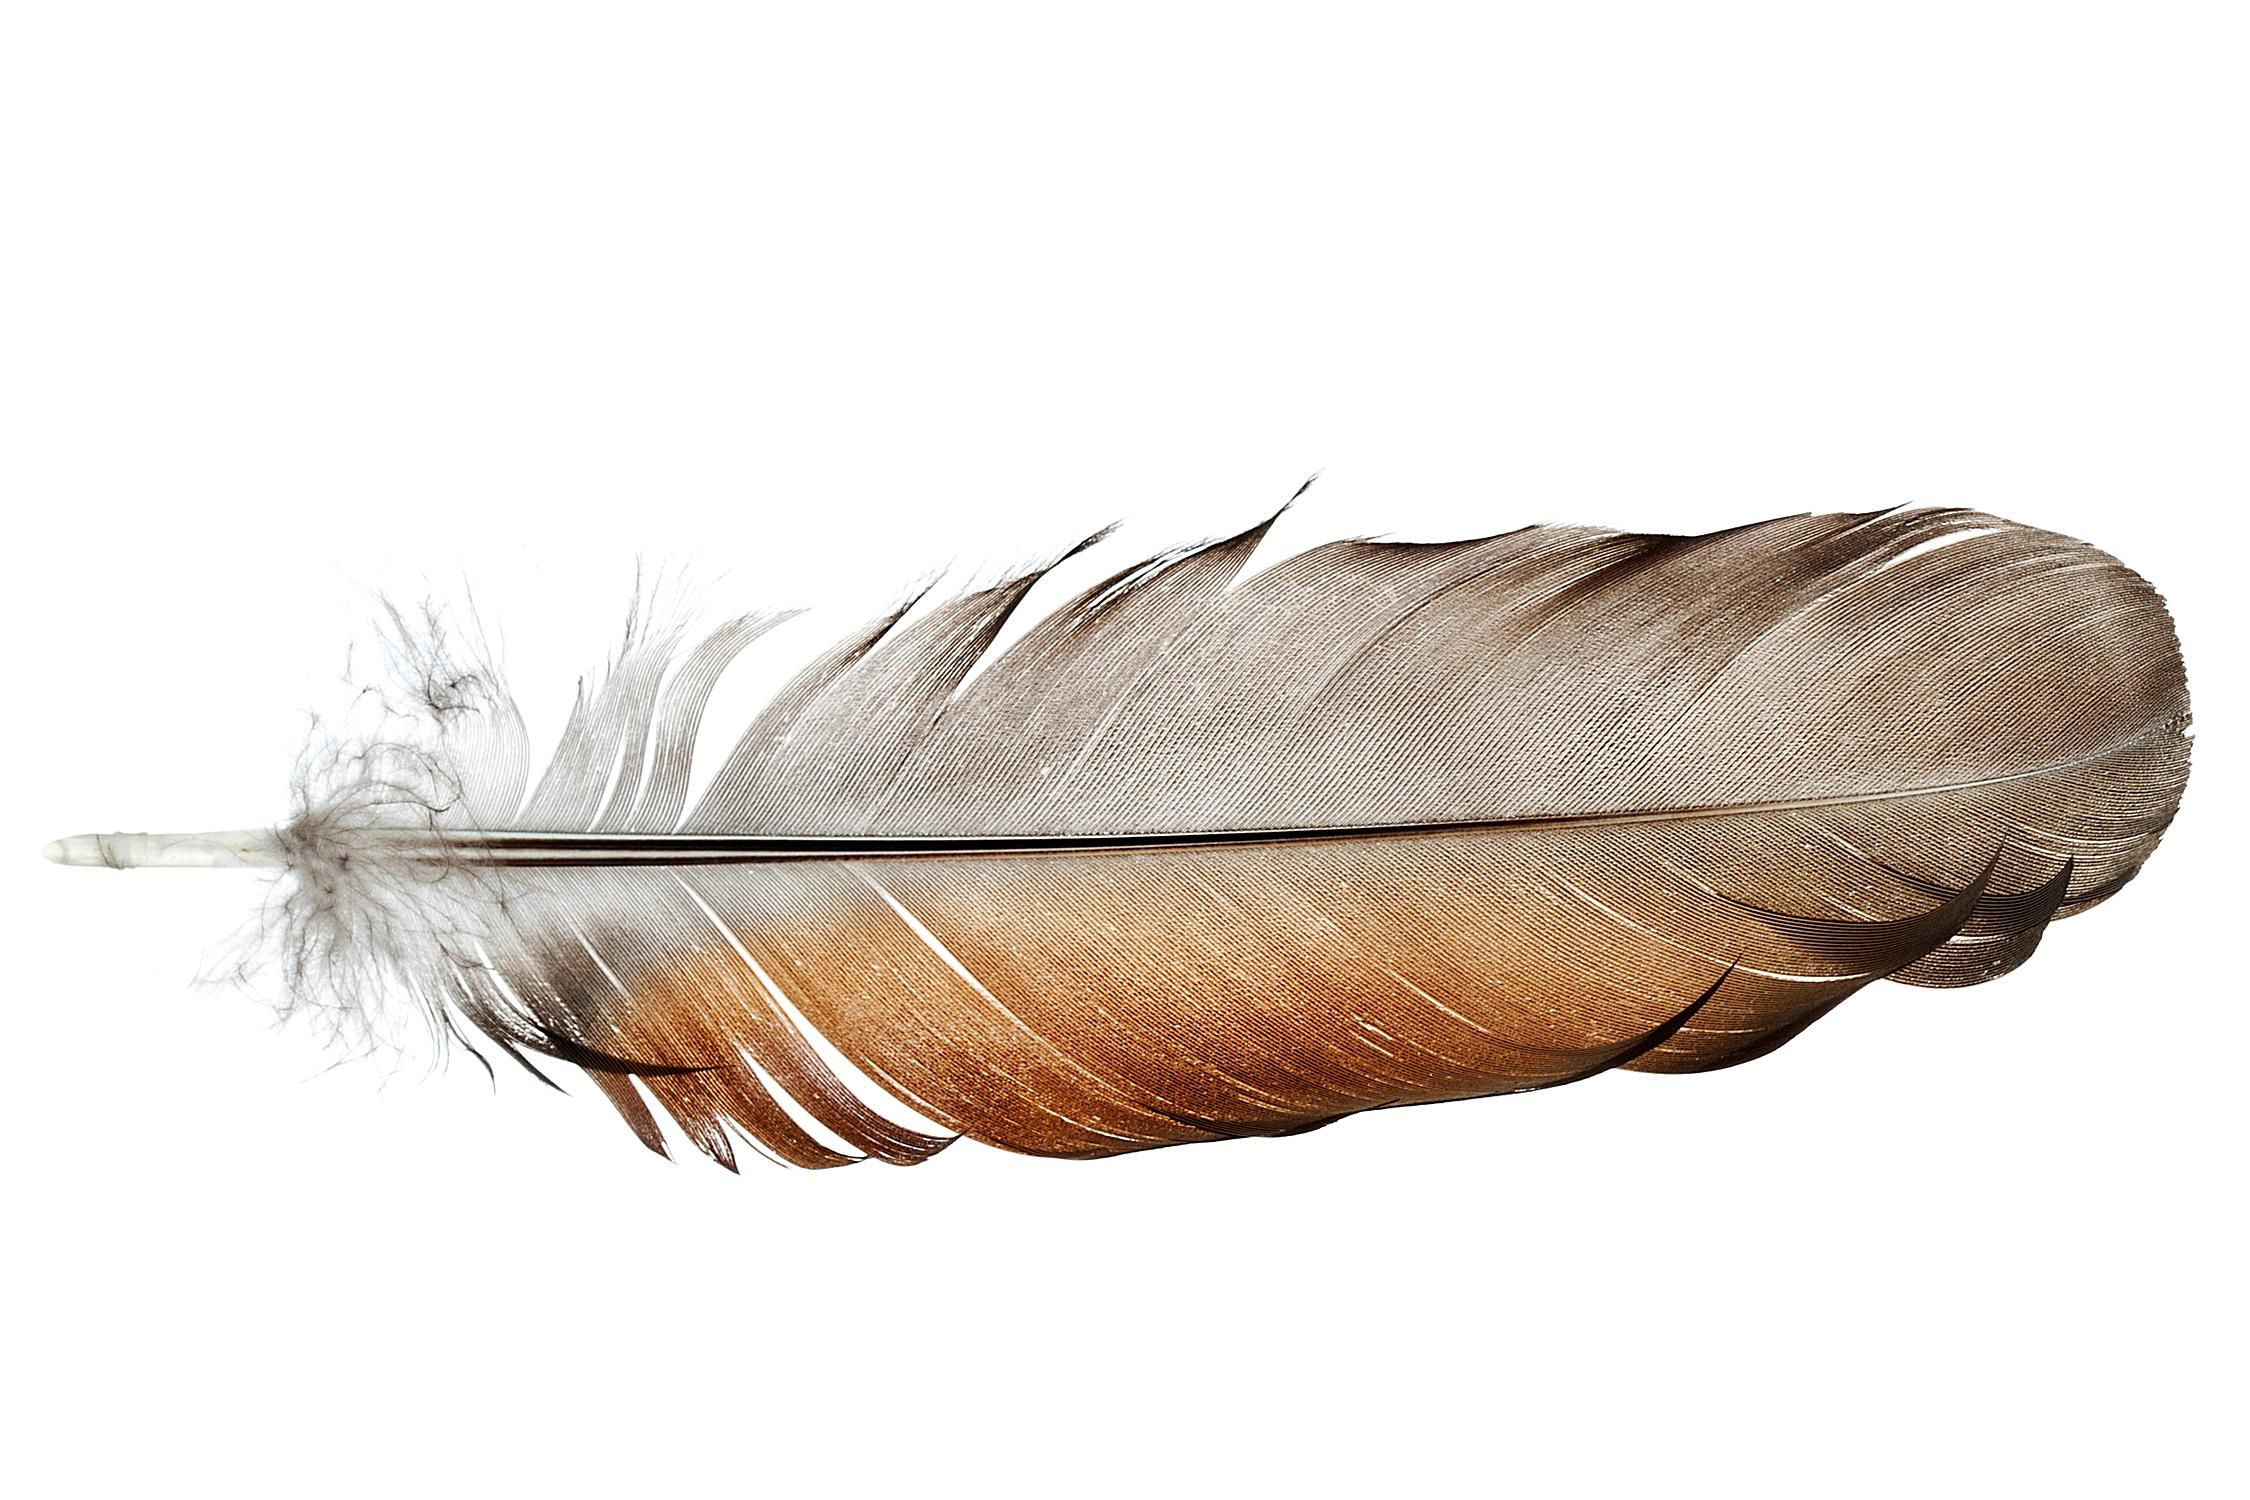 Feather - Feather Anatomy and Function